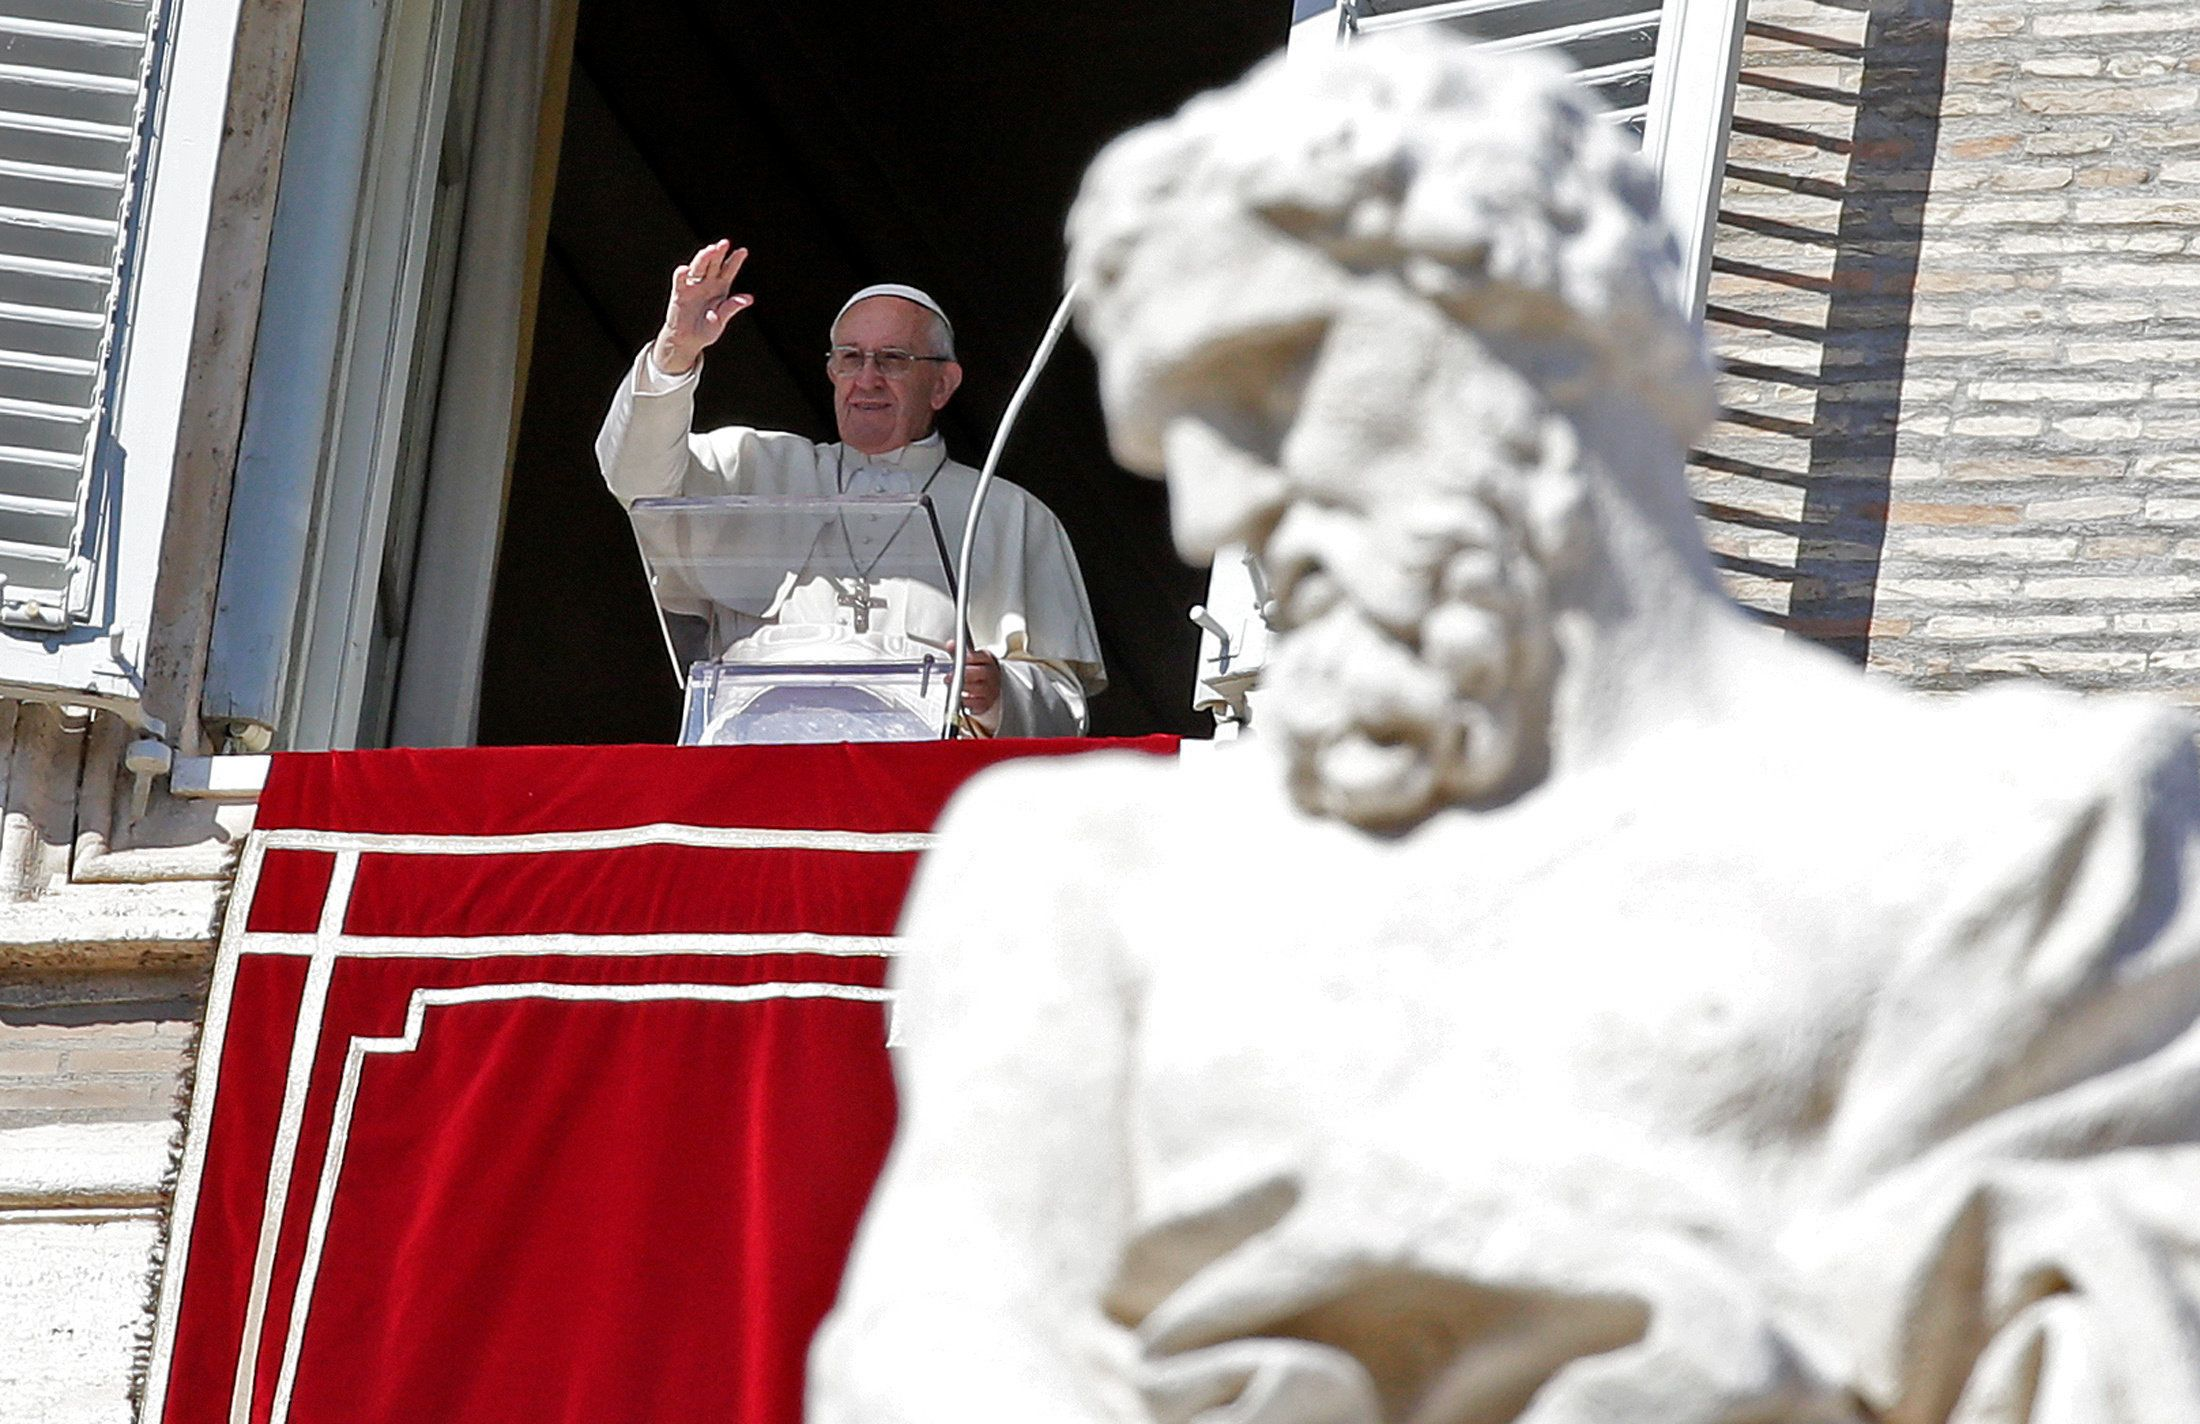 Pope Francis leads the Angelus prayer in Saint Peter's Square at the Vatican February 4, 2018.   REUTERS/Max Rossi